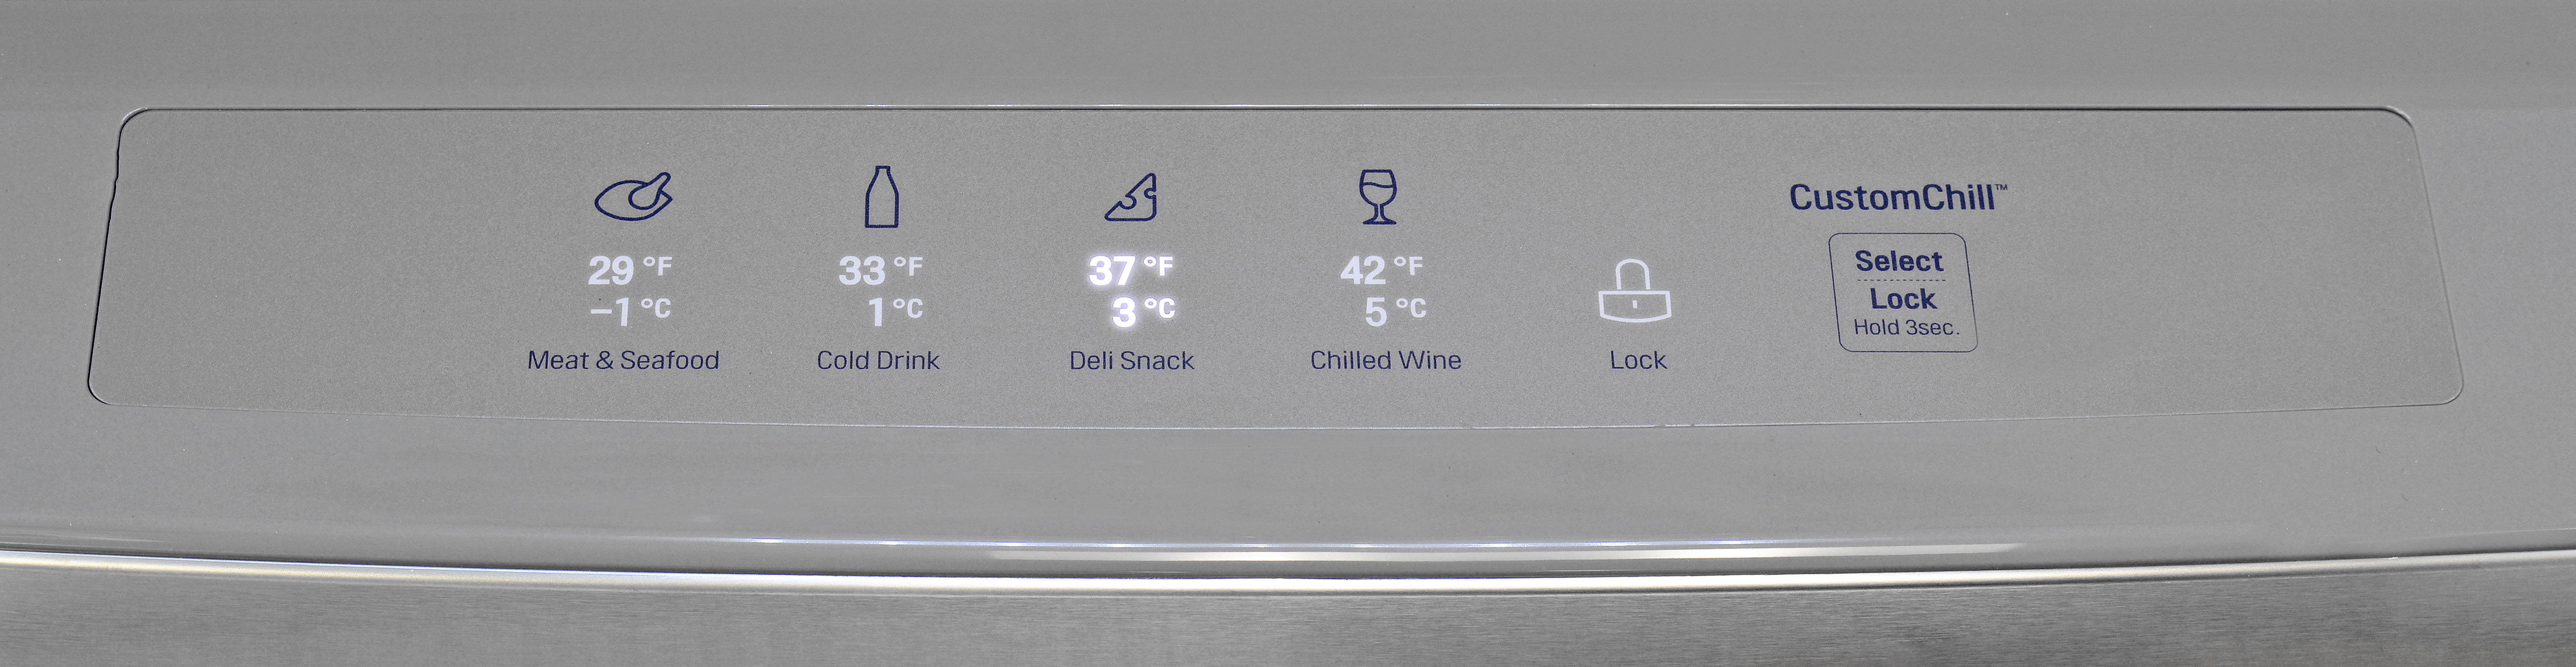 The LG LMXS30786S's central drawer has four distinct temperature settings to fit your needs.